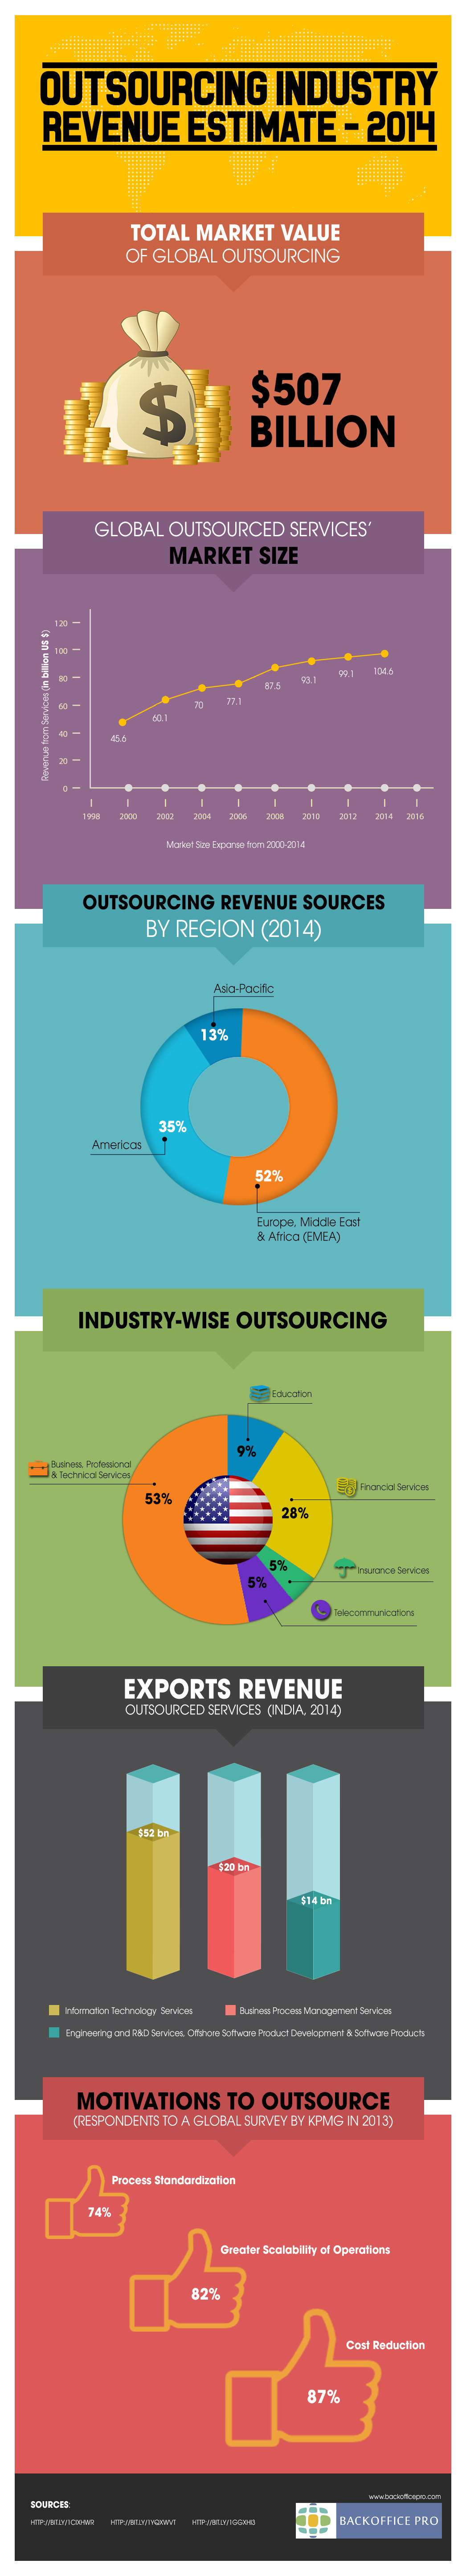 Outsourcing Destinations-infographic